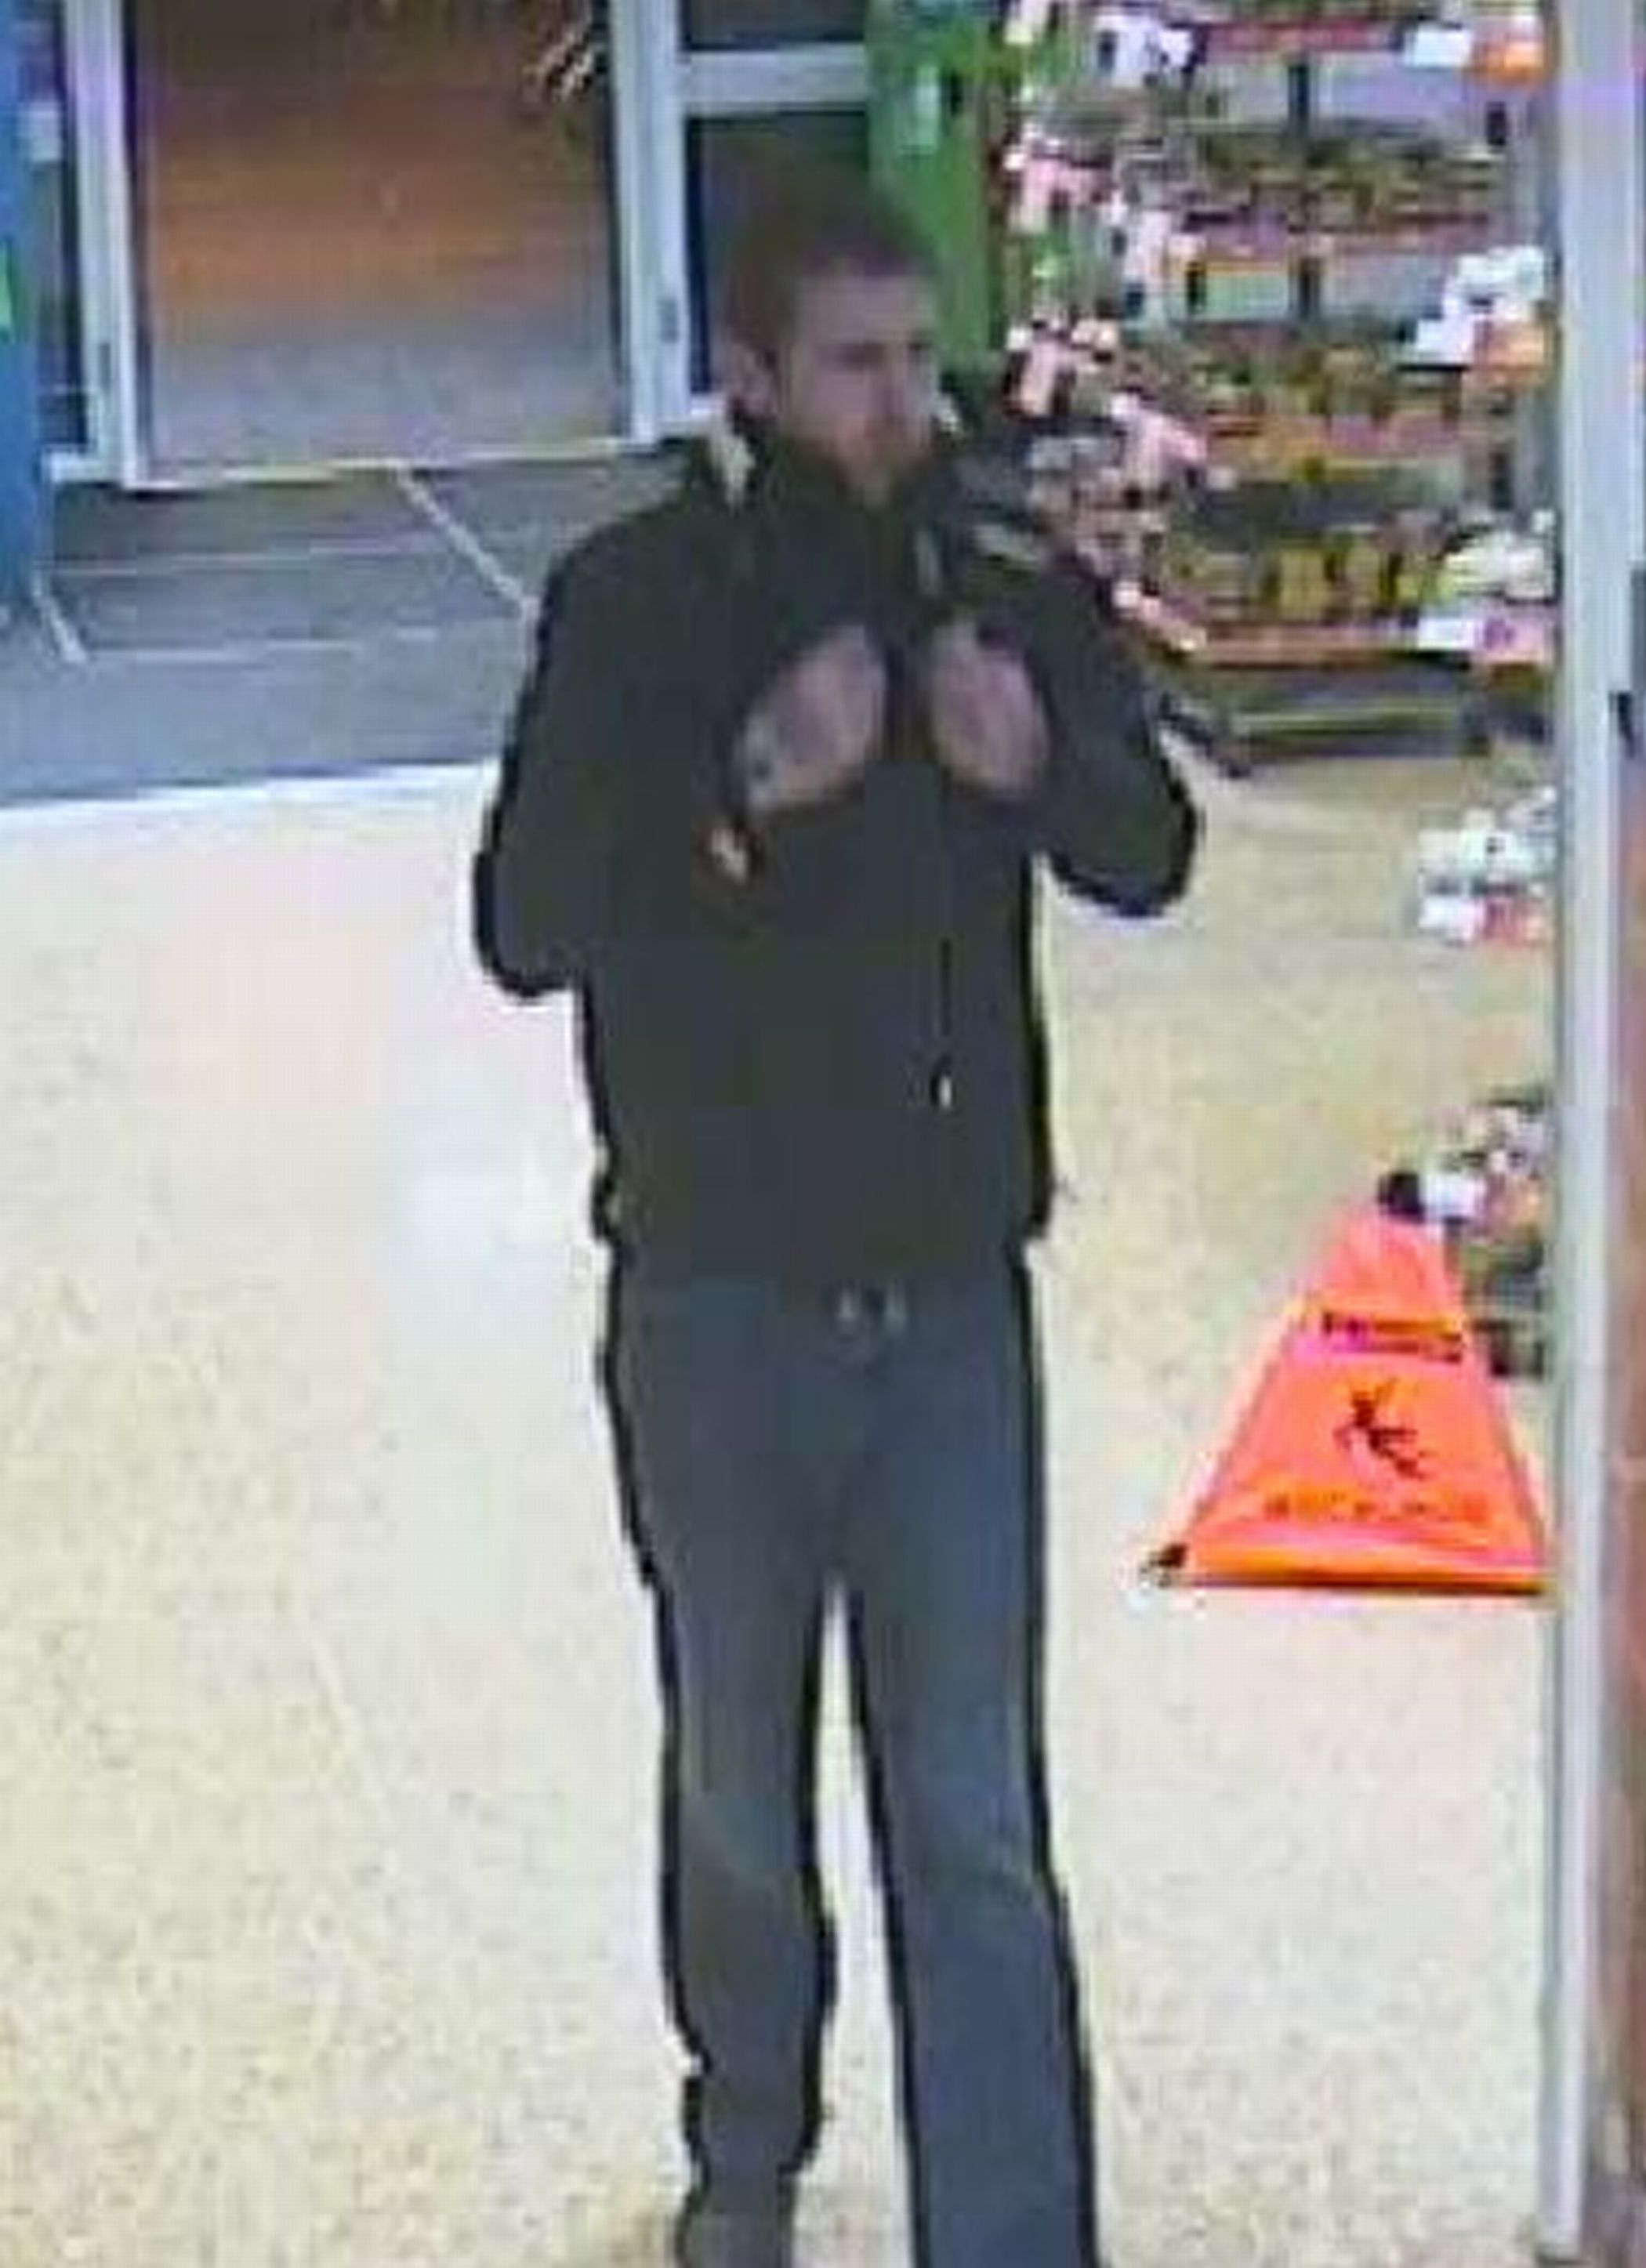 Police appeal after man steals three TVs from Asda in Taunton